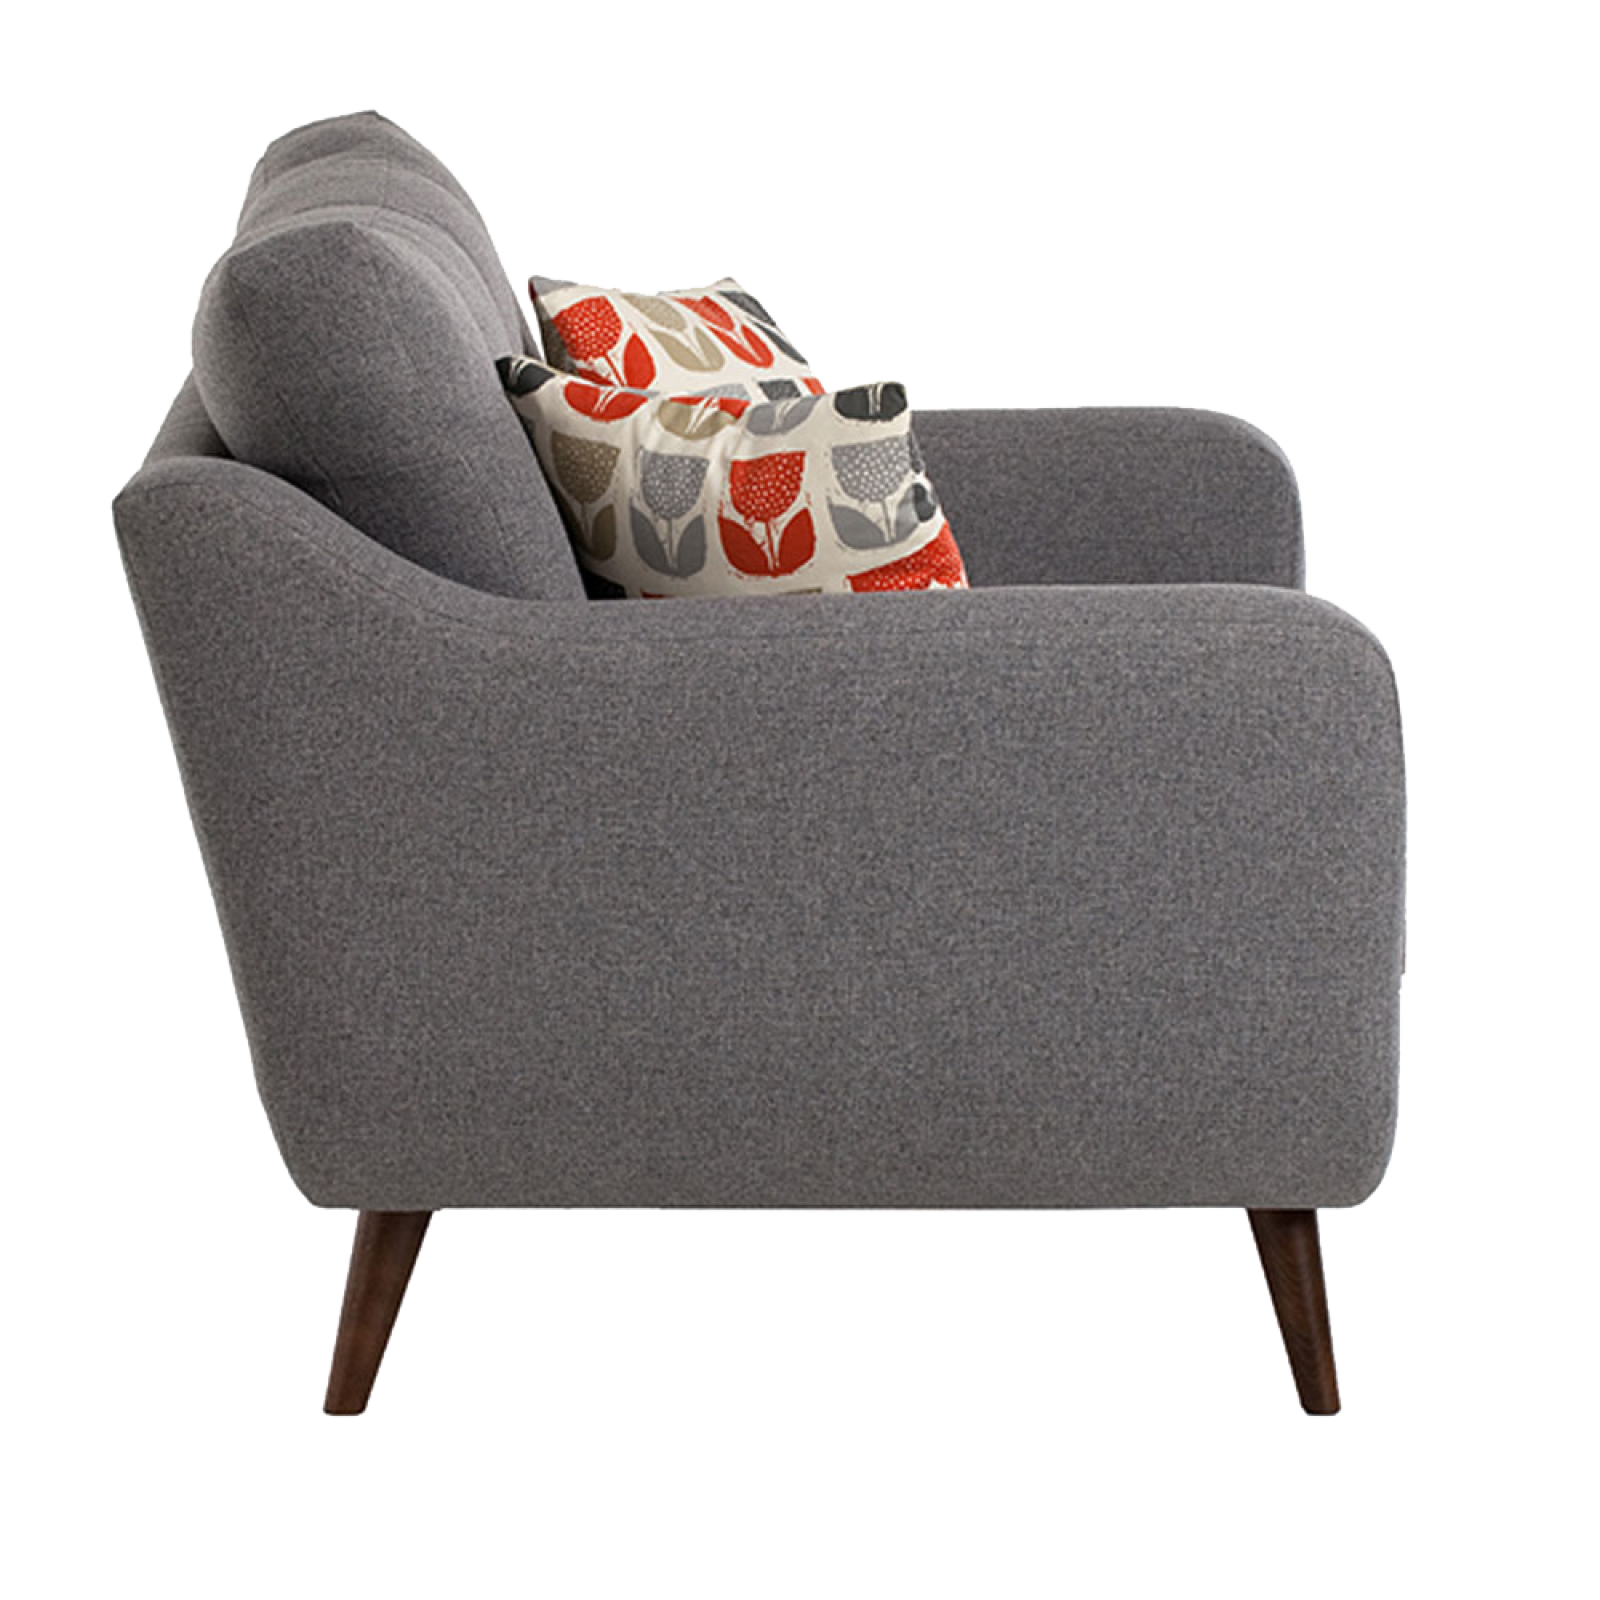 Lisbon Armchair By Whitemeadow - Fabric Grade A thumbnails